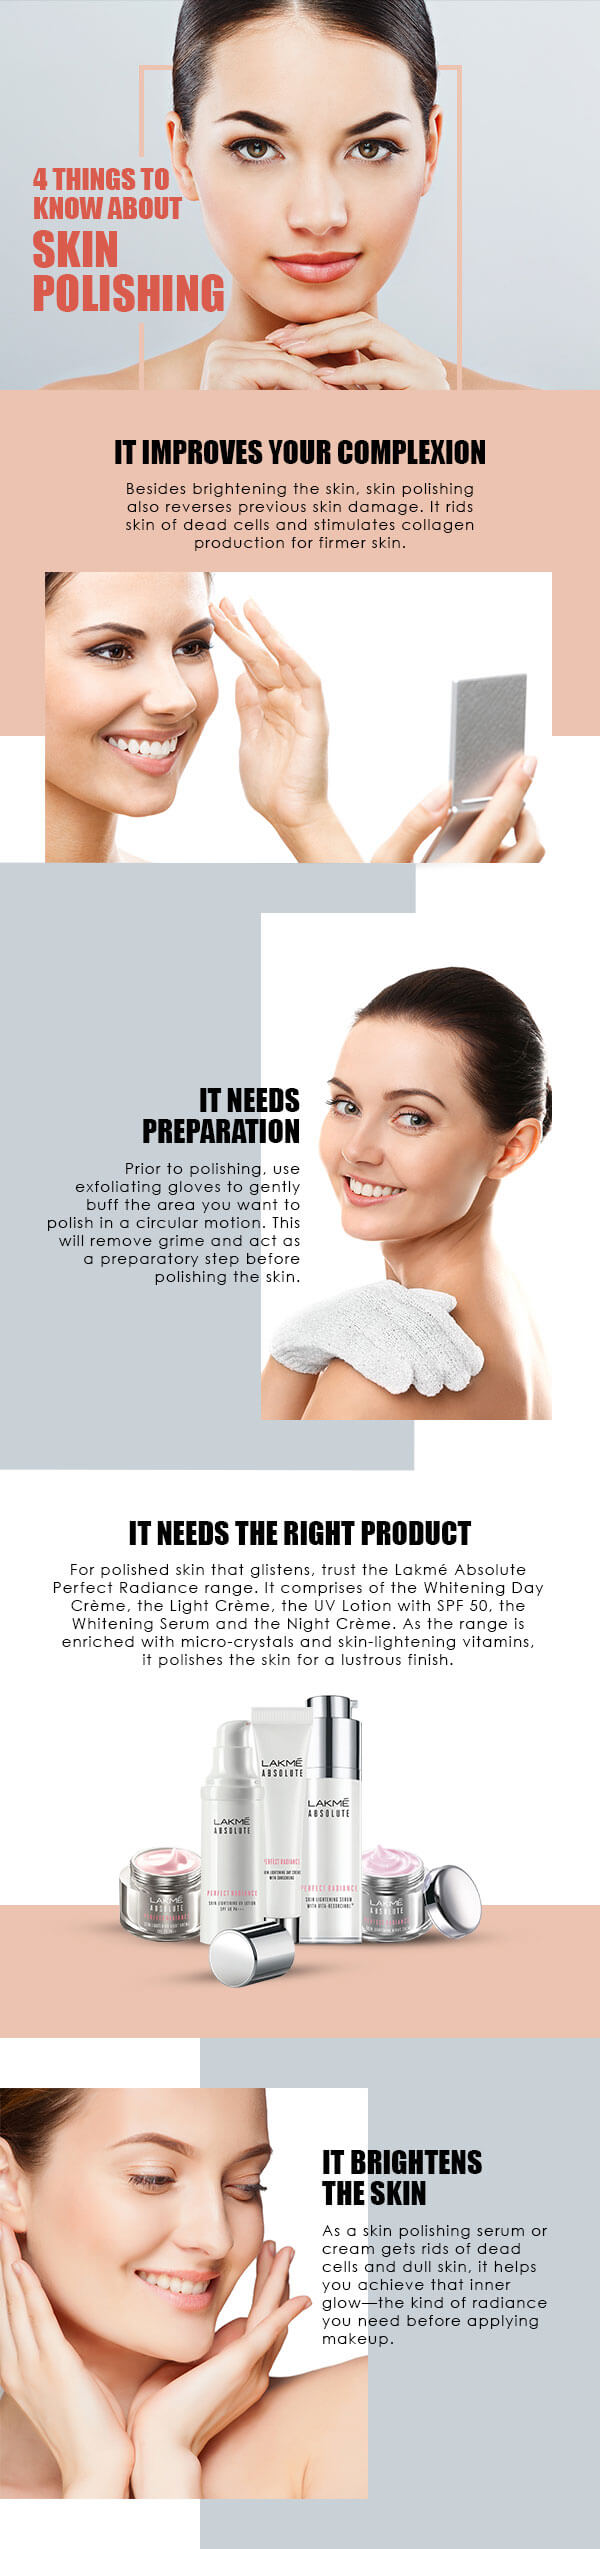 4 things to know about skin polishing